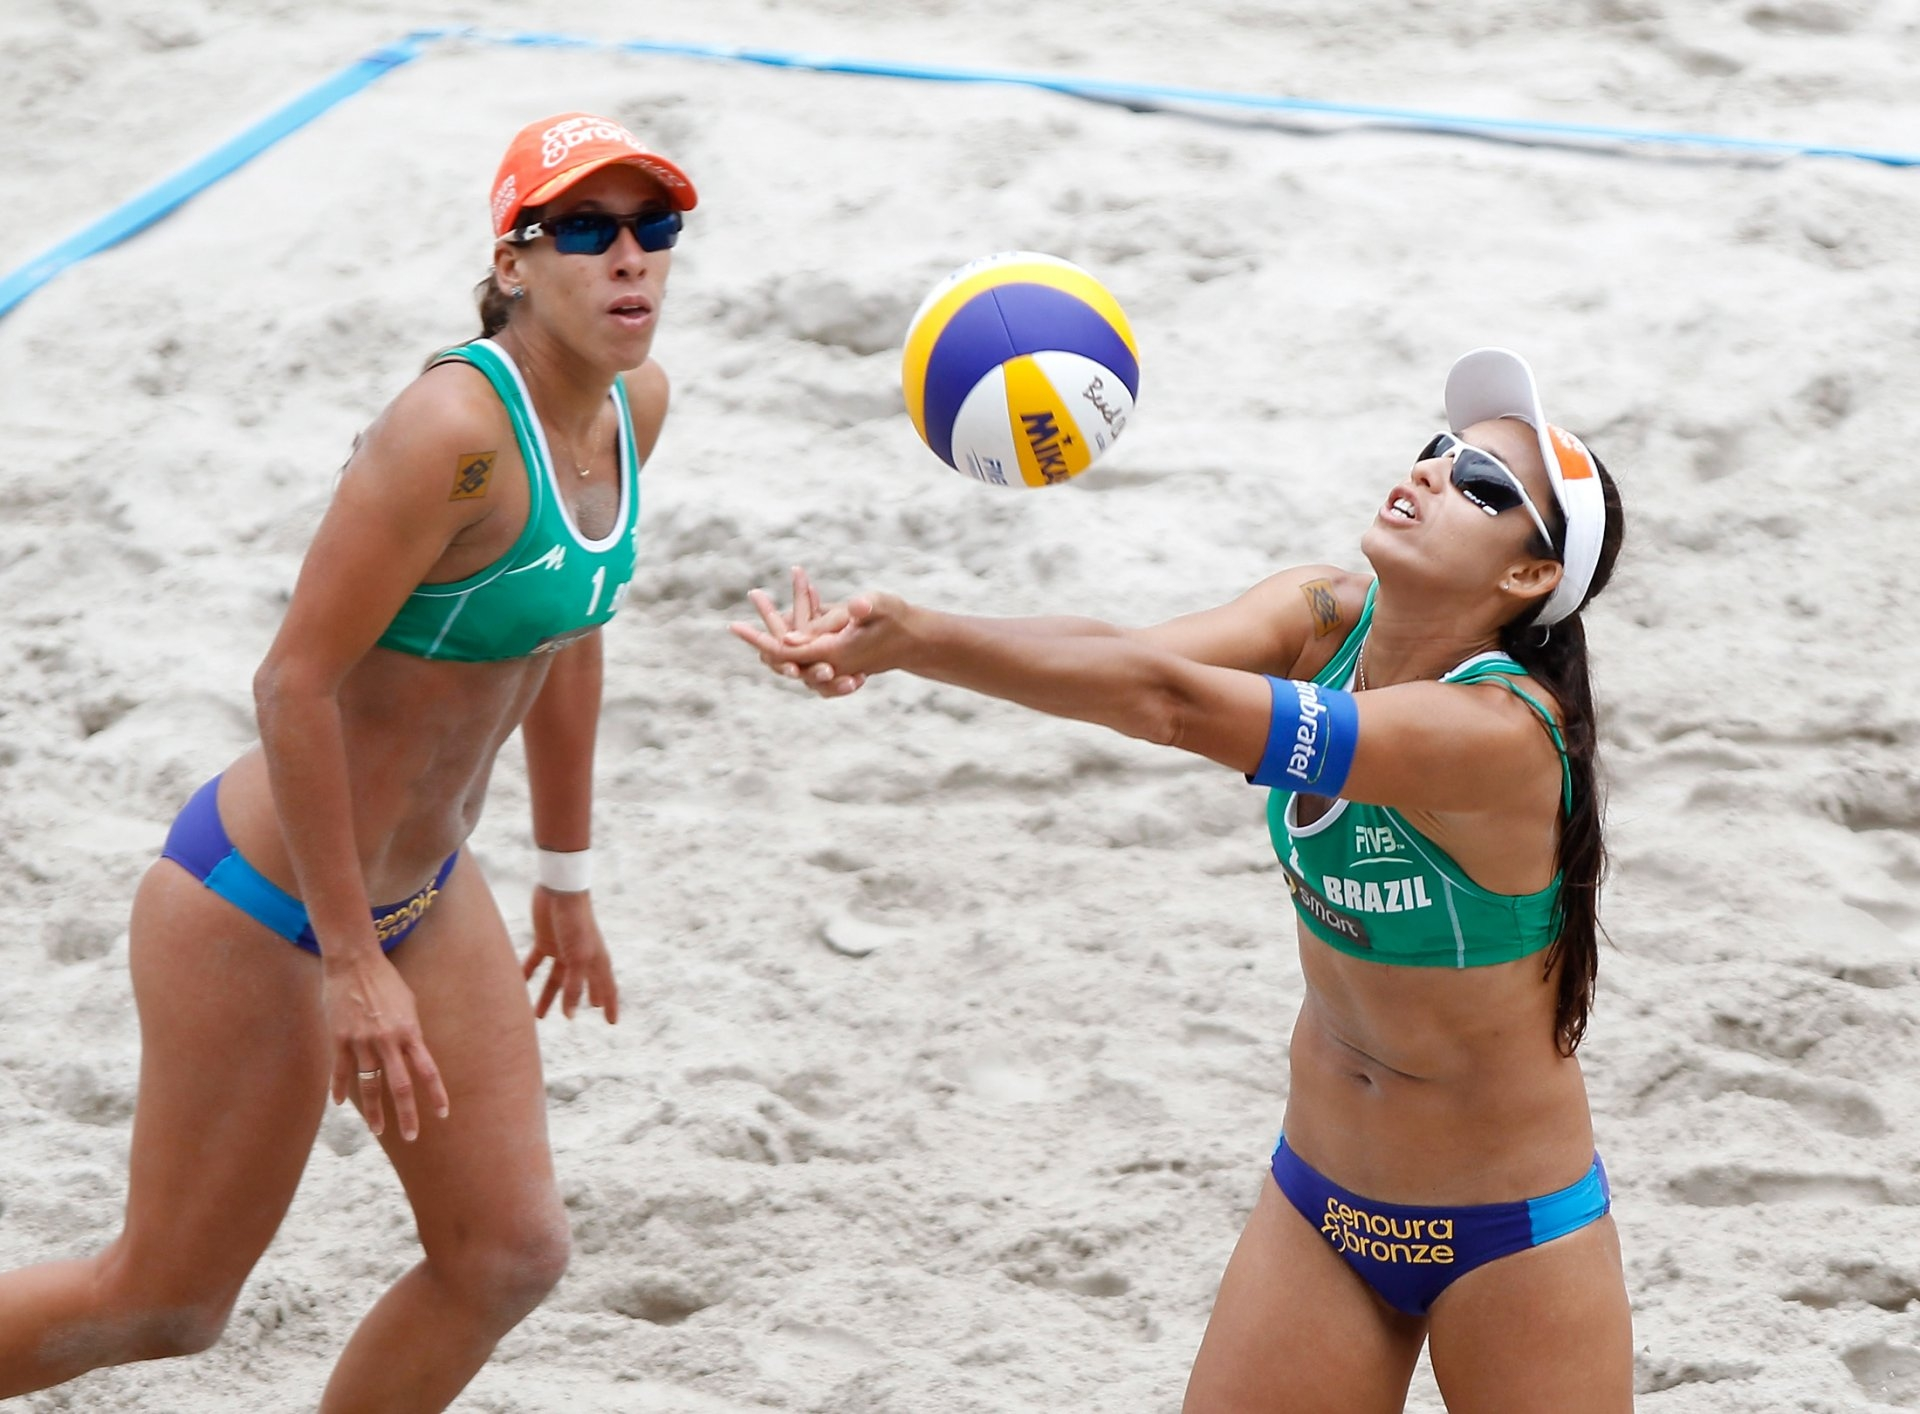 Taiana and Talita will contend for an Olympic berth at the Tokyo 2020 Games (Photocredit: FIVB)